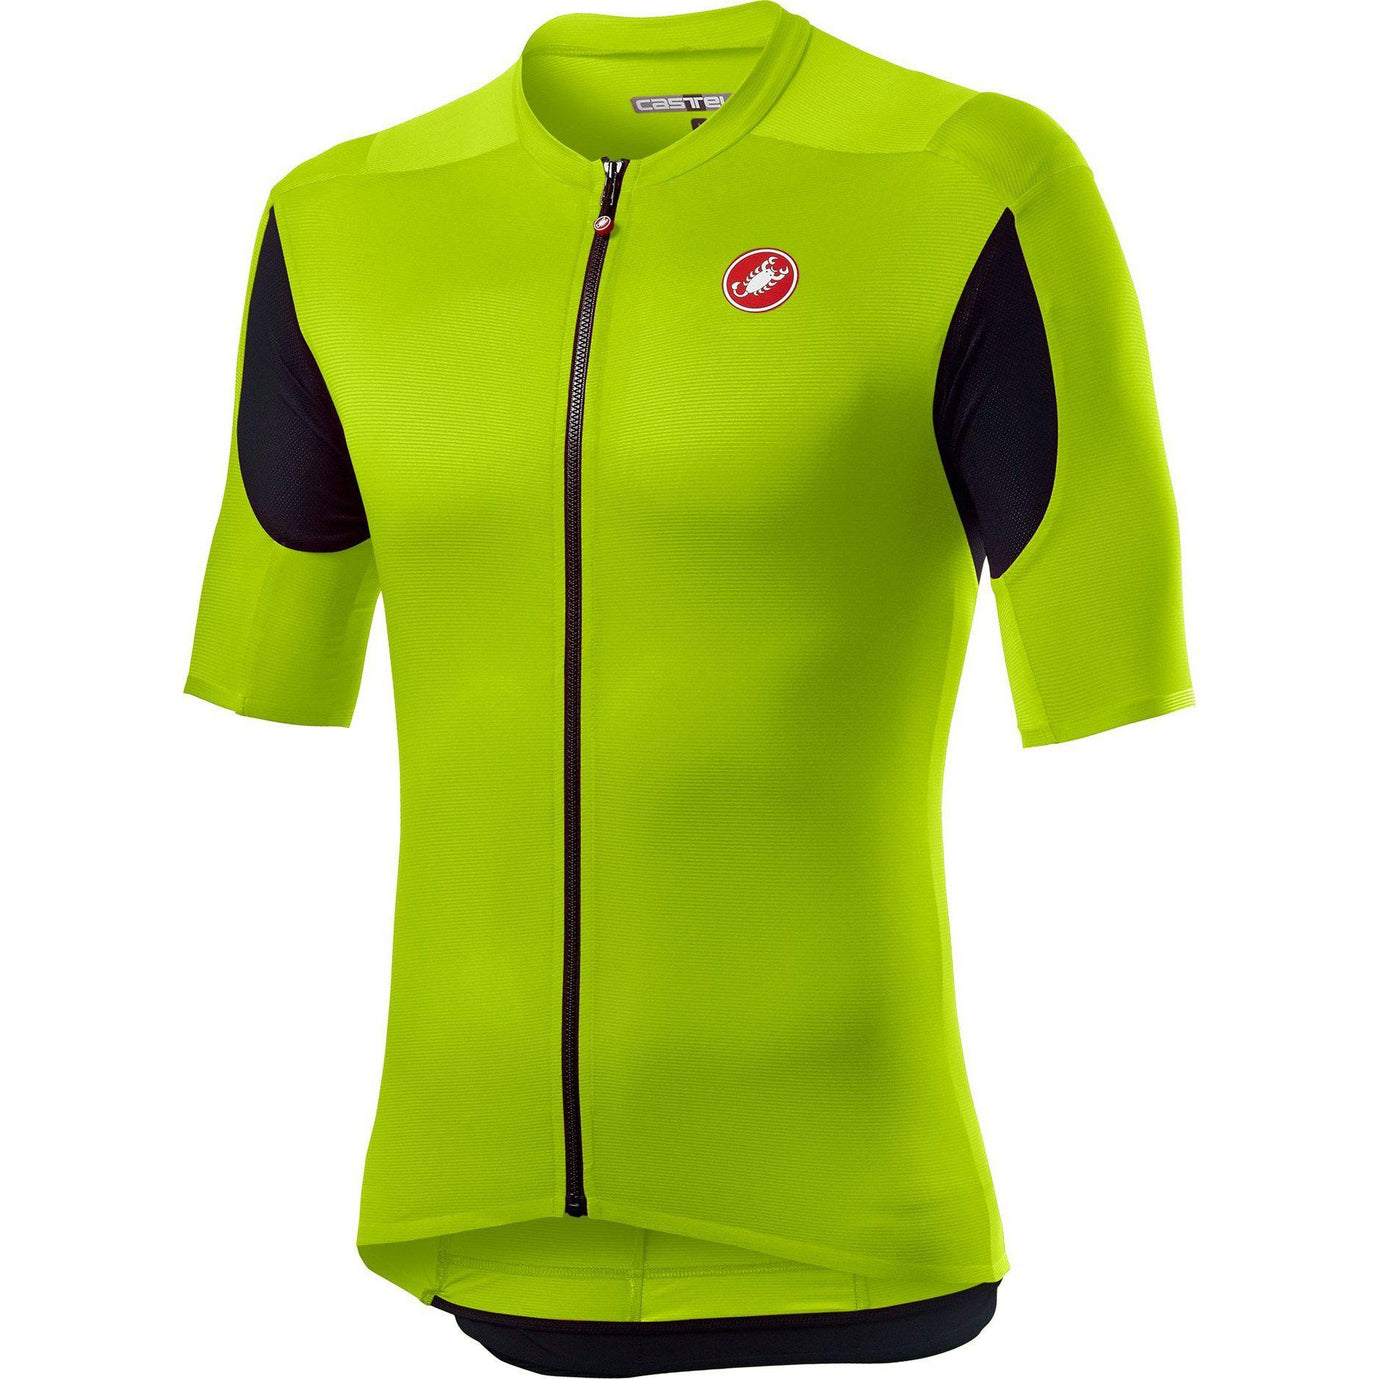 Castelli-Castelli Superleggera 2 Jersey-Chartreuse-XS-CS200173841-saddleback-elite-performance-cycling